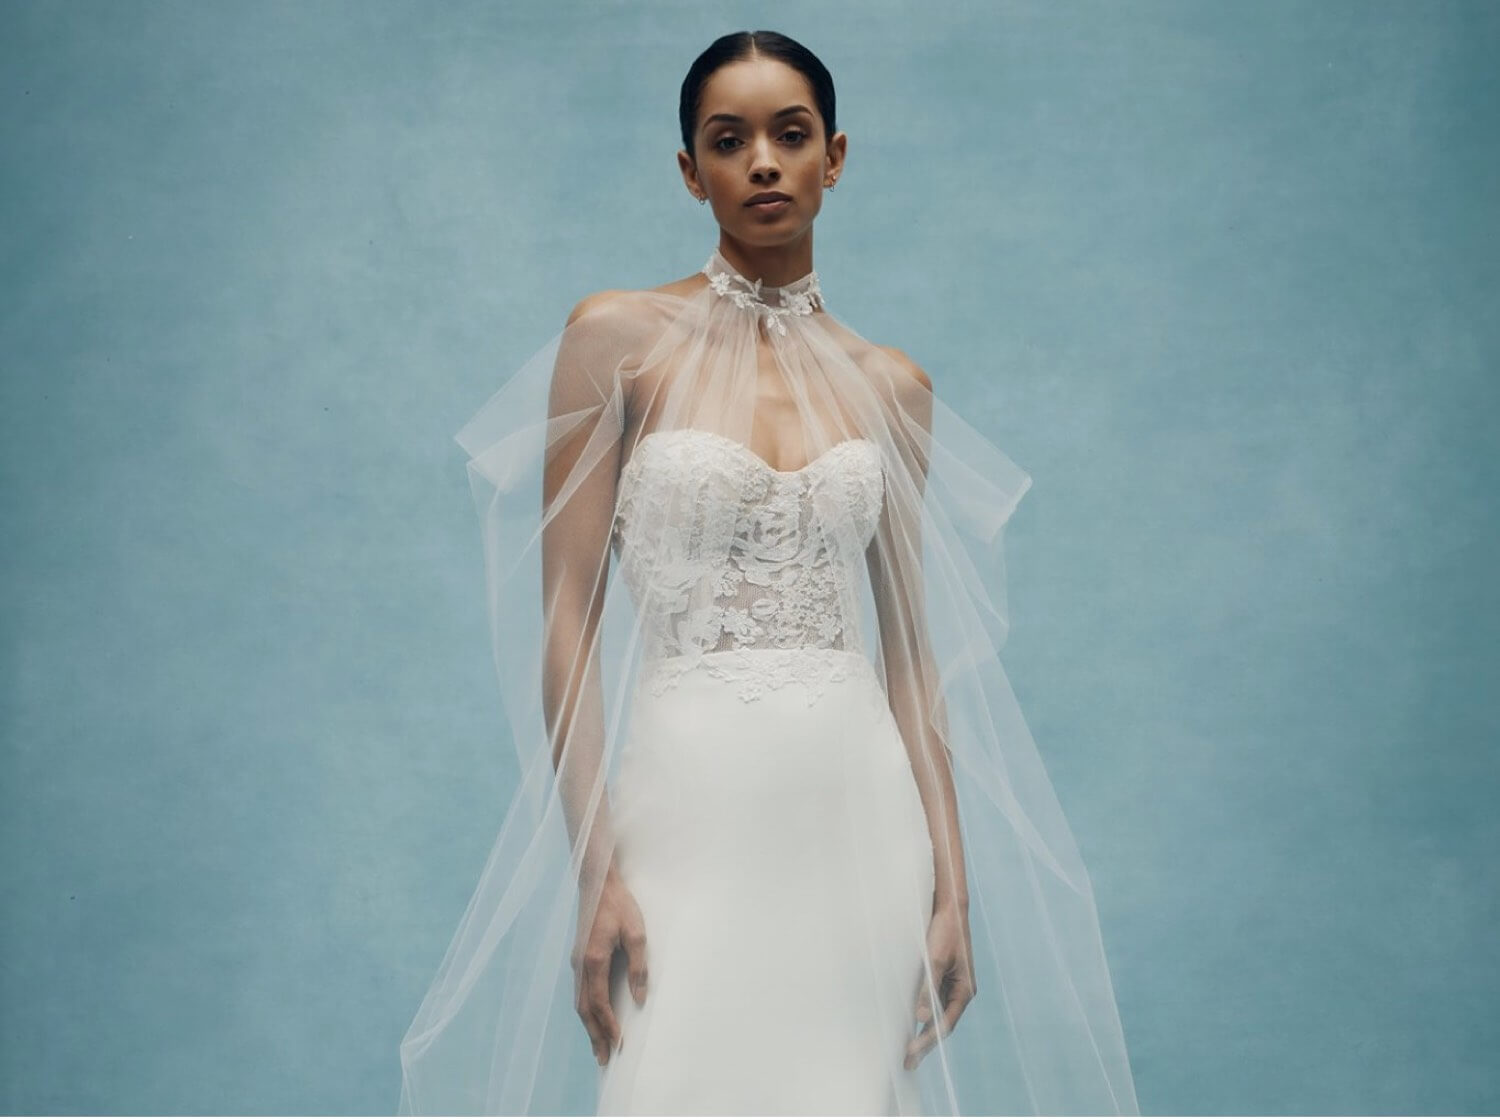 Model wearing a white bridal gown by Anne Barge